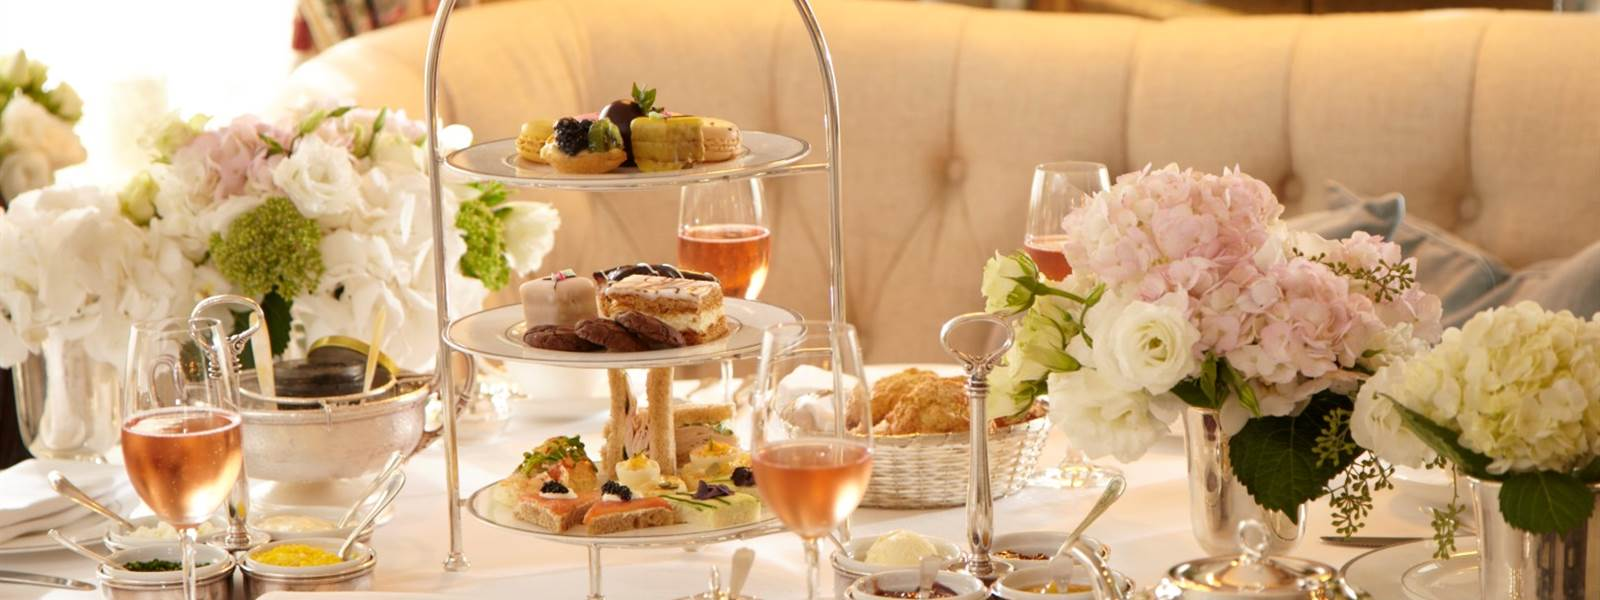 Pembroke Room at The Lowell Hotel offer a luxury afternoon tea selection